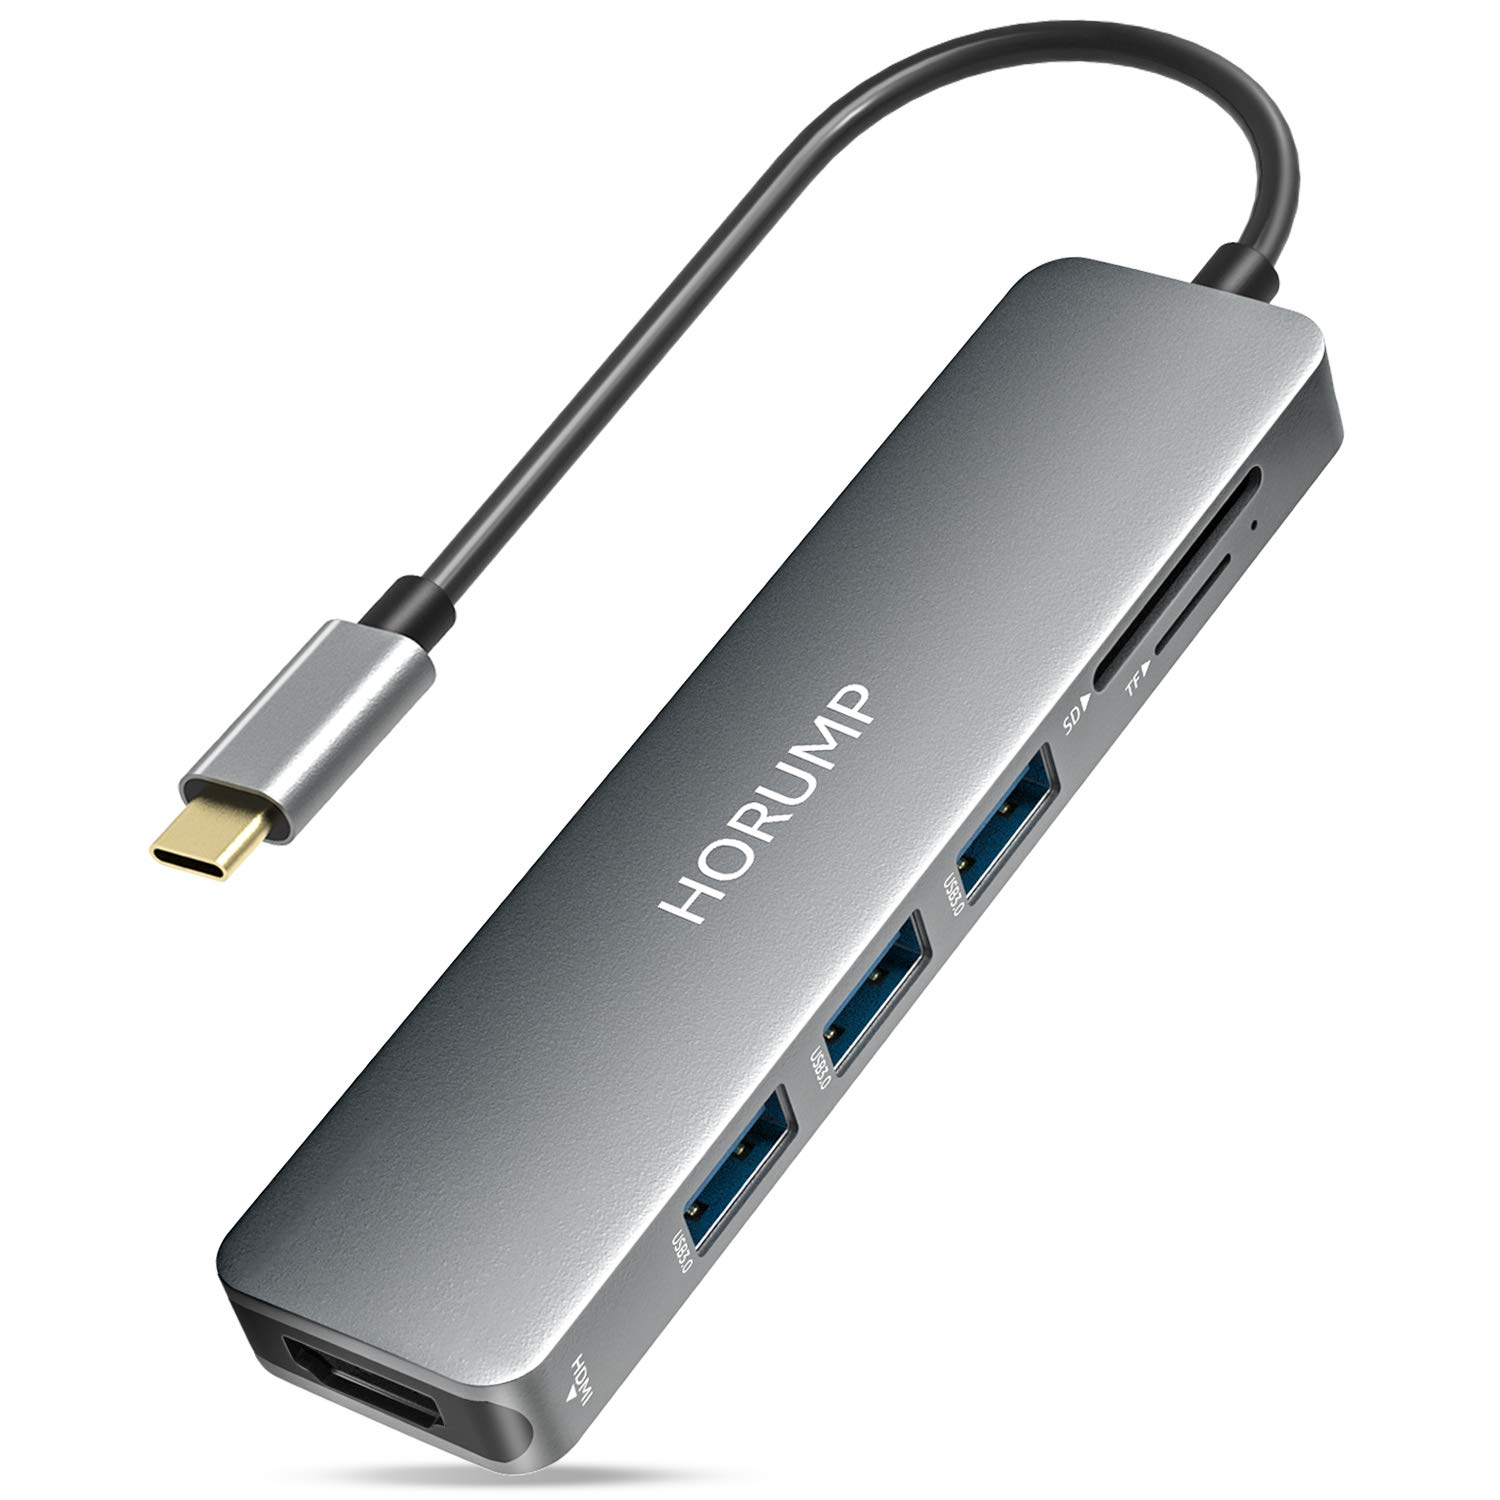 USB C Dongle Compatible with MacBook Air//Pro XPS and More Type C Devices HORUMP 7 in 1 USB C Adapter with 3 USB 3.0 Ports,4K USB C to HDMI USB C Hub SD//Micro SD Card Reader